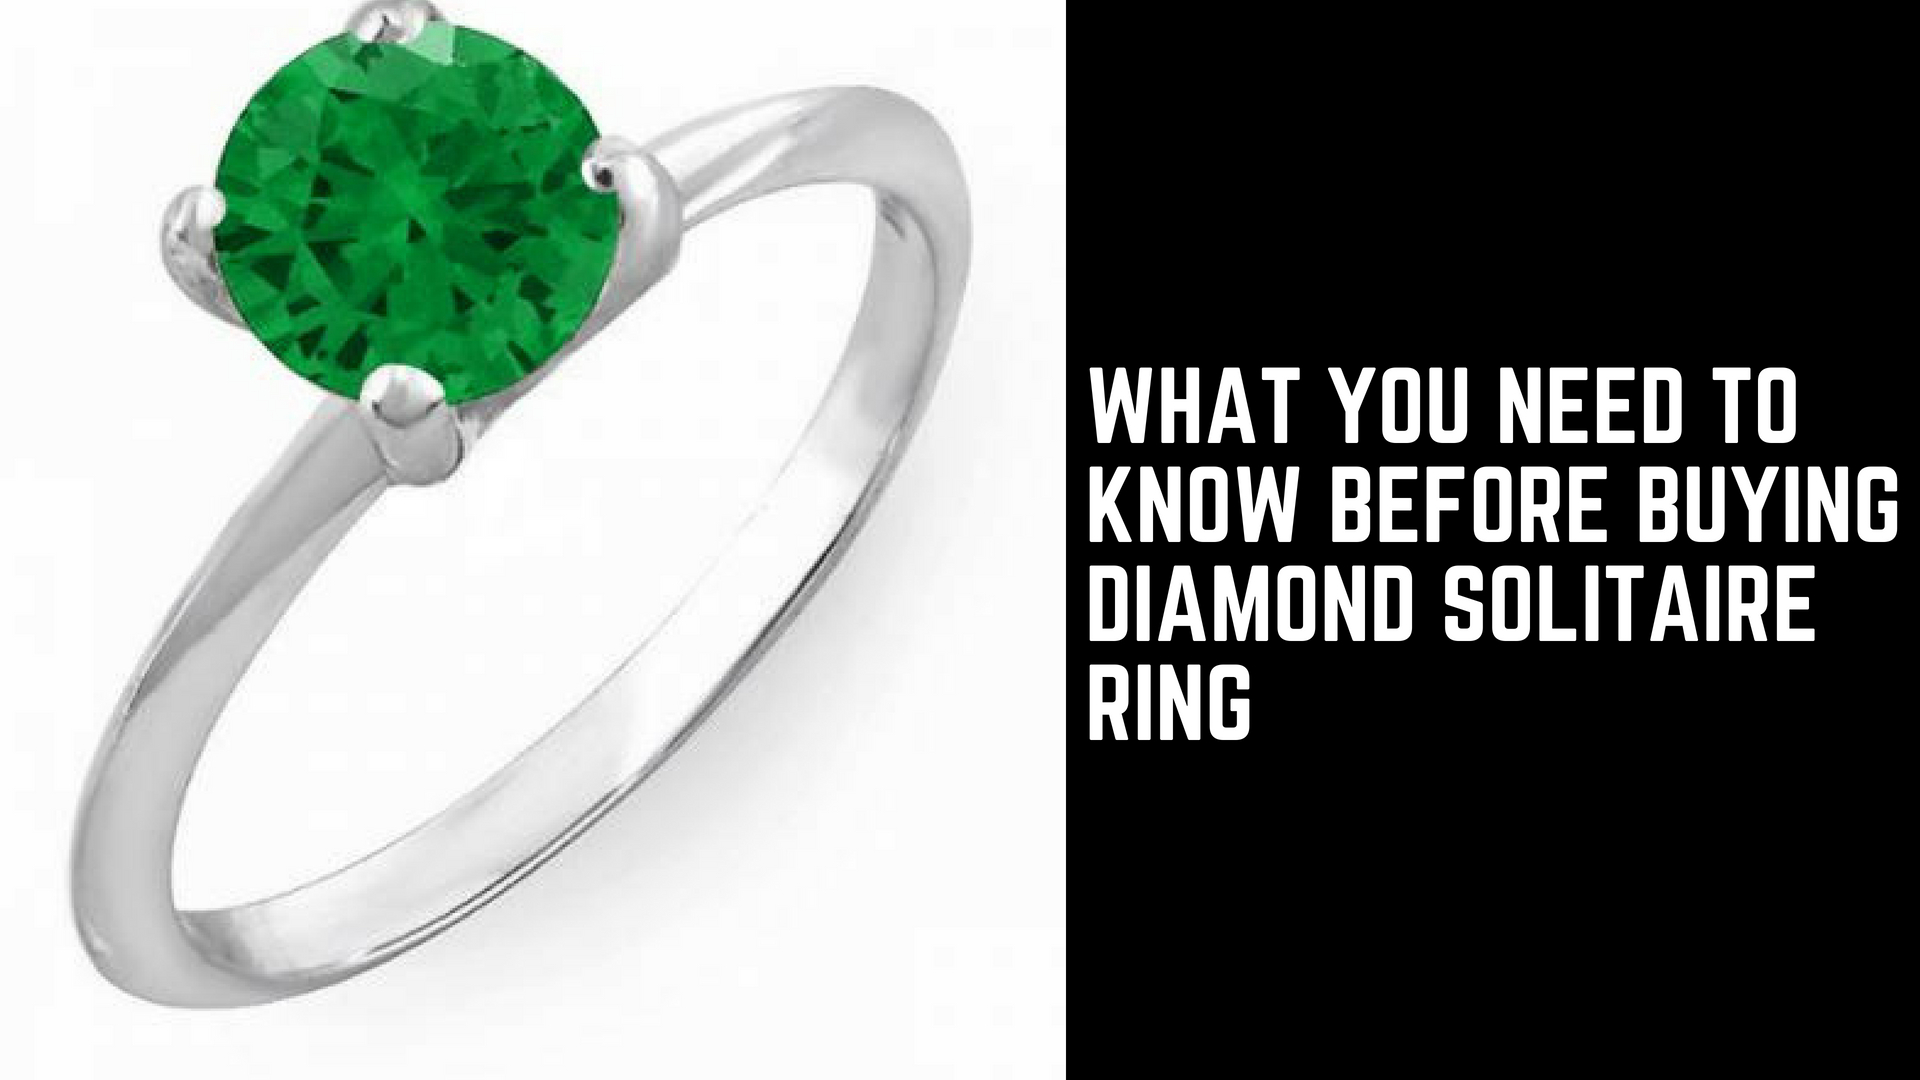 What You Need To Know Before Buying Diamond Solitaire Ring